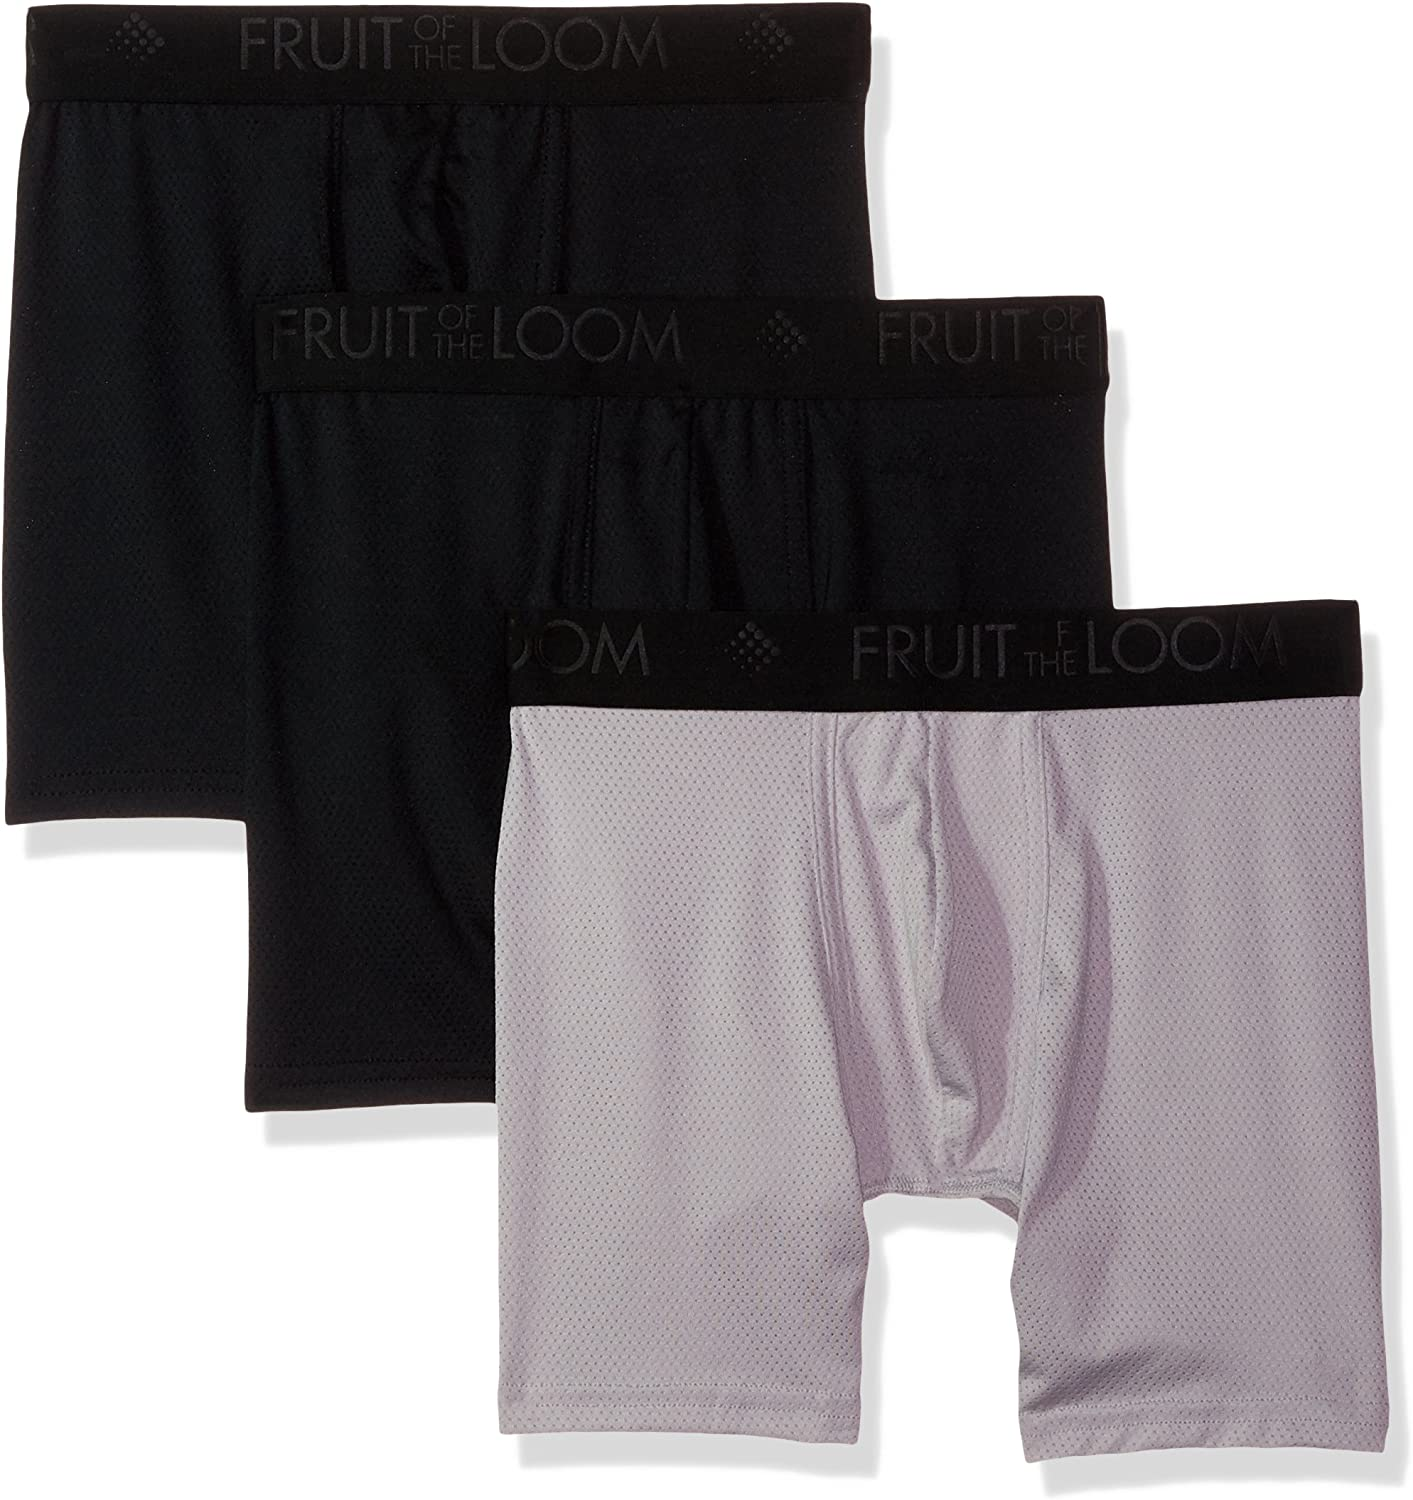 Fruit of the Loom Men's 3pk Breathable Lightweight Micro-mesh Boxer Brief